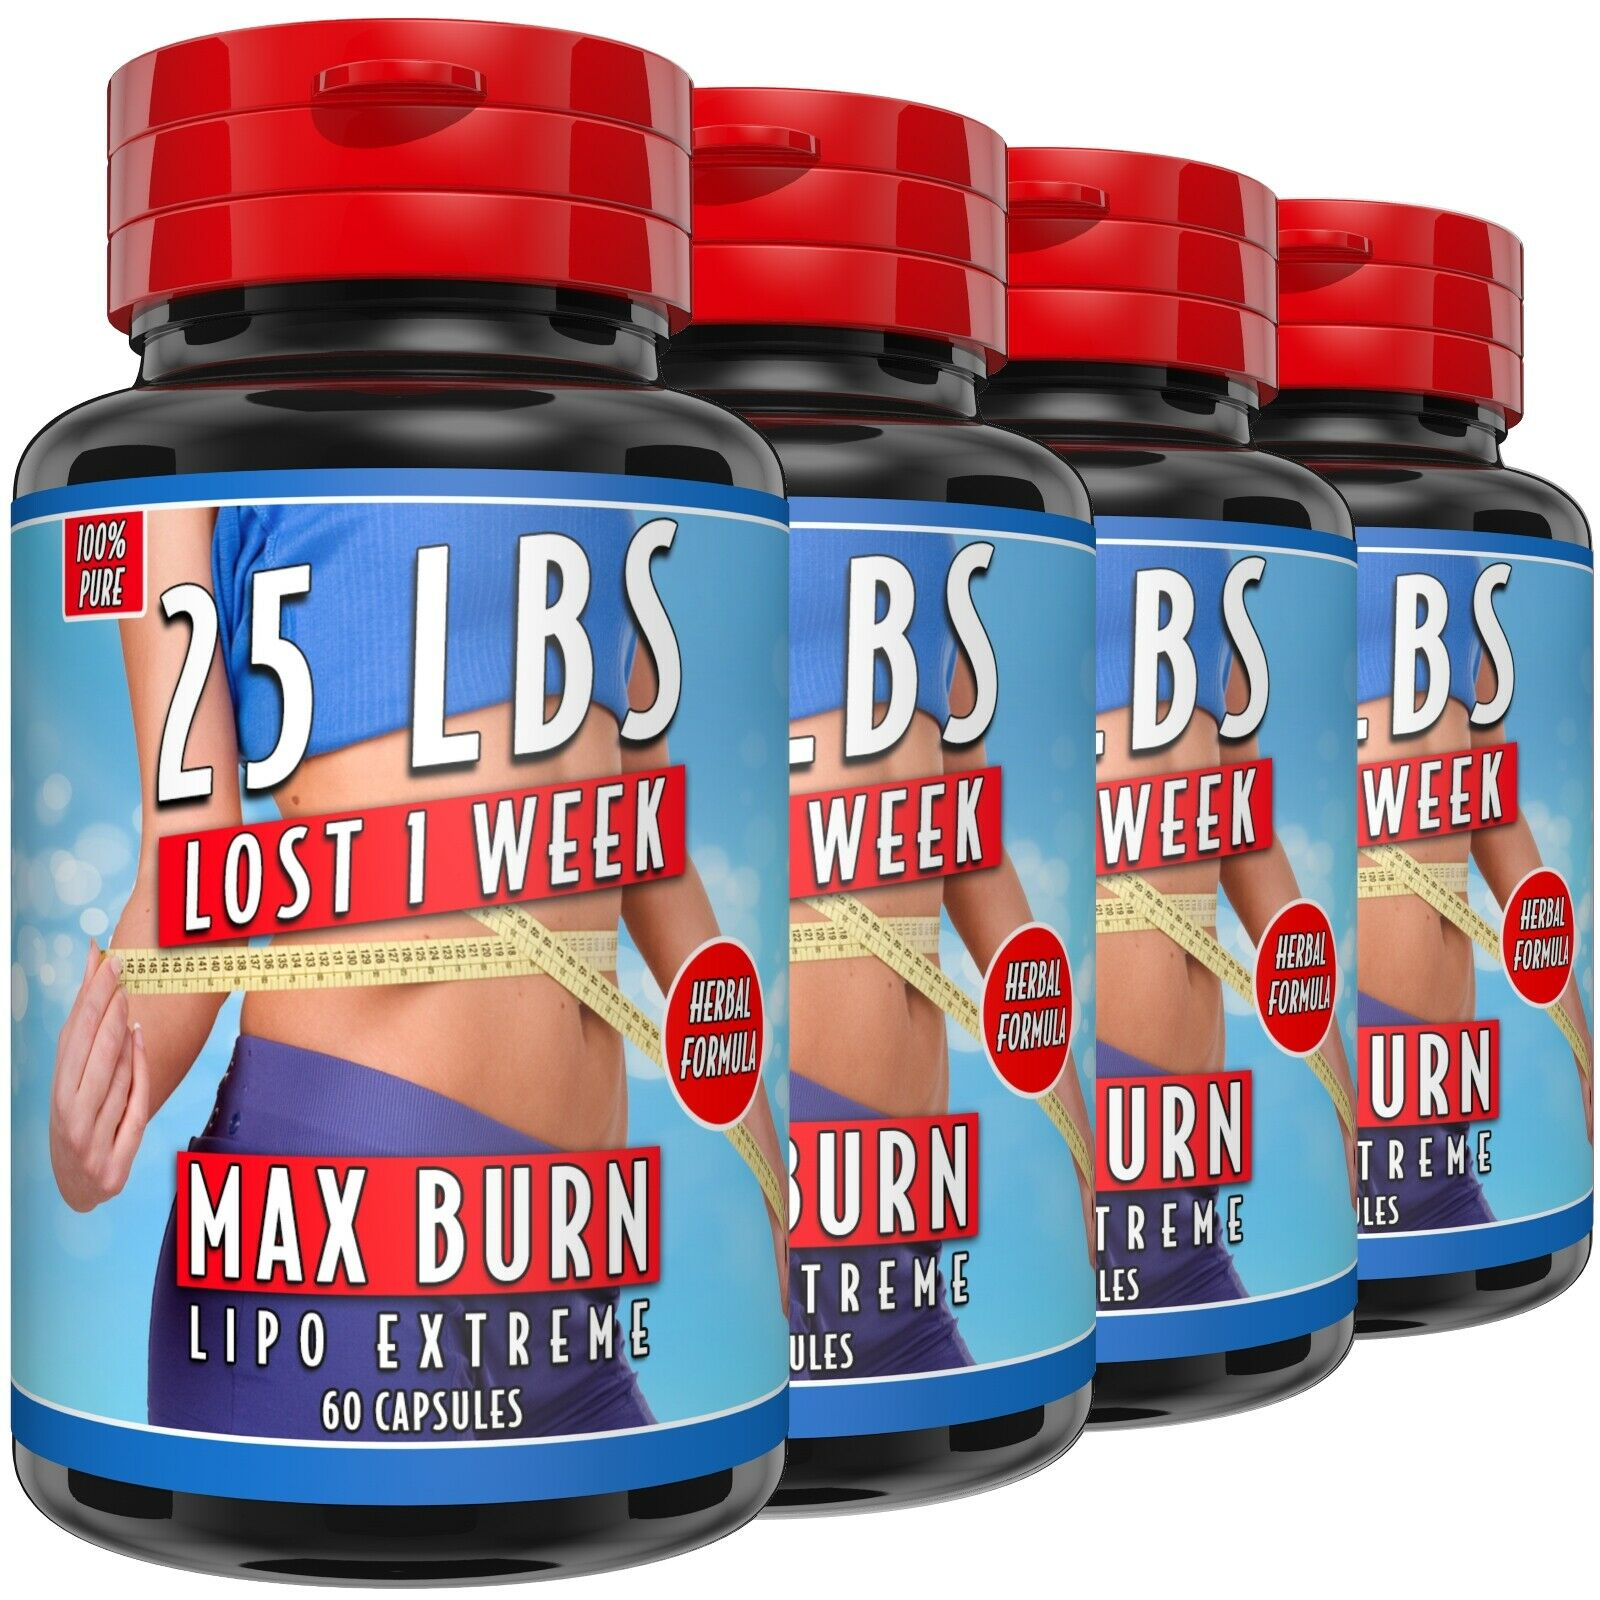 lipo extreme weight loss slimming pill fast